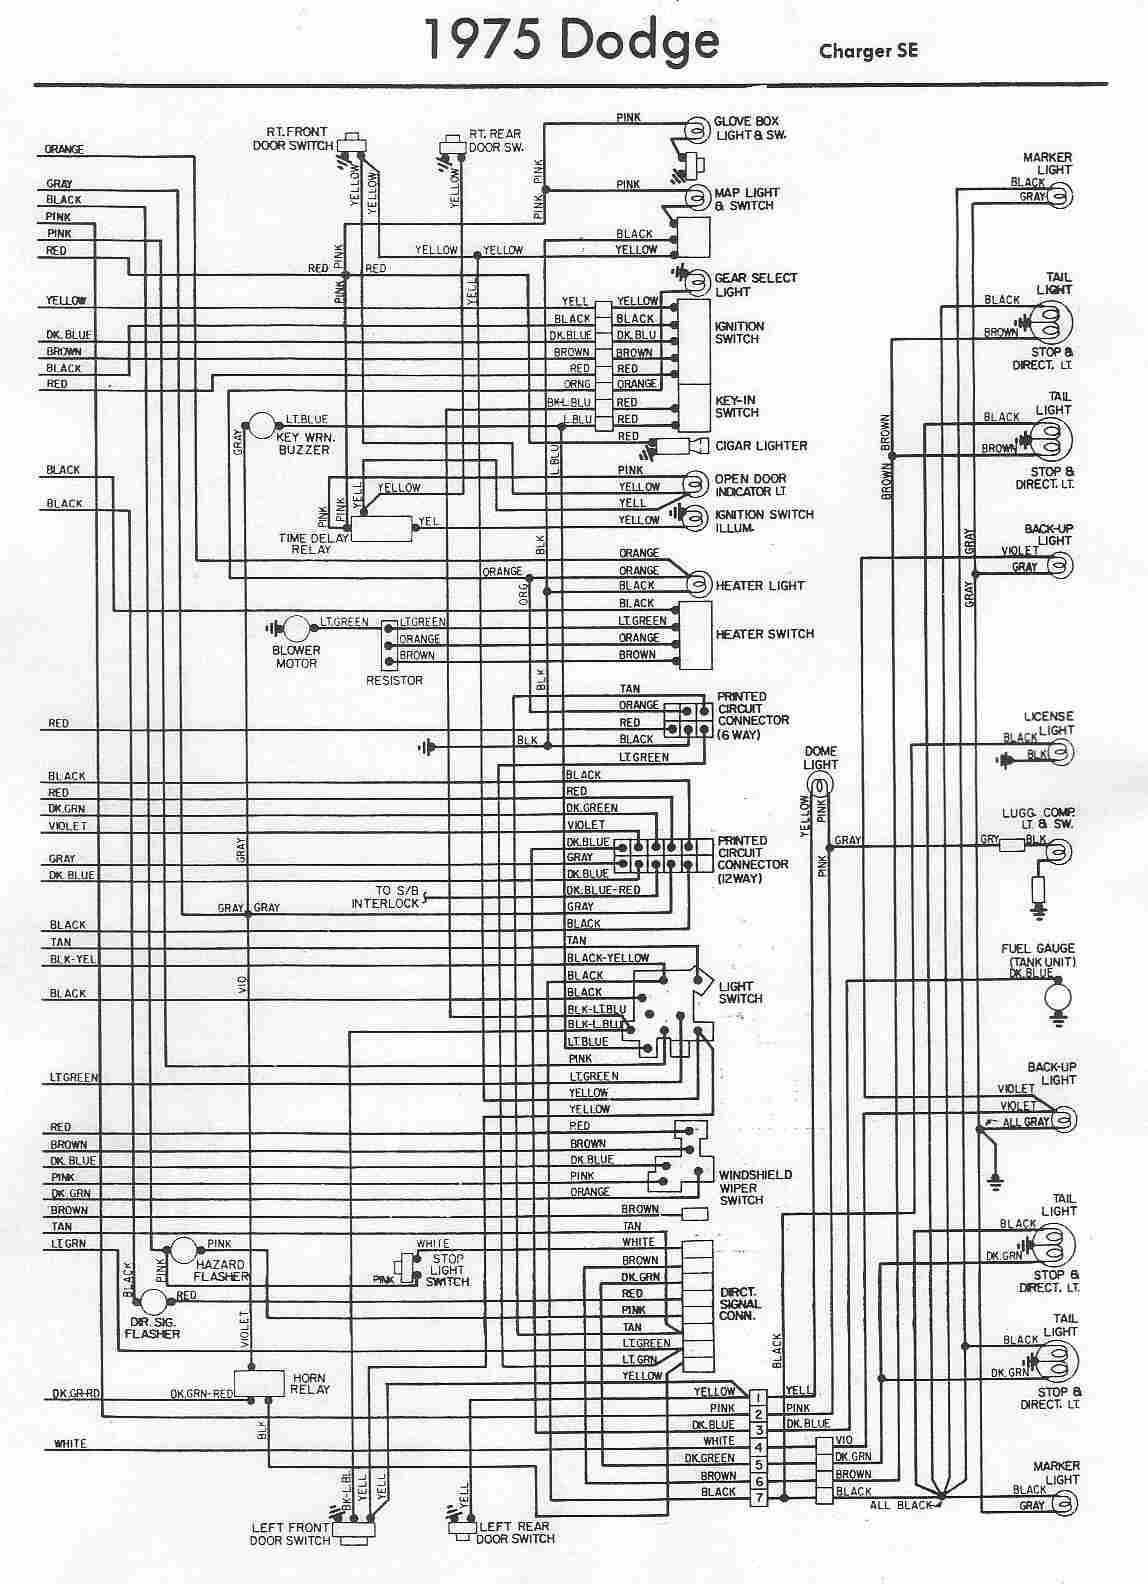 Dodge Car Manuals Wiring Diagrams Pdf Fault Codes 2001 Caravan Diagram Download